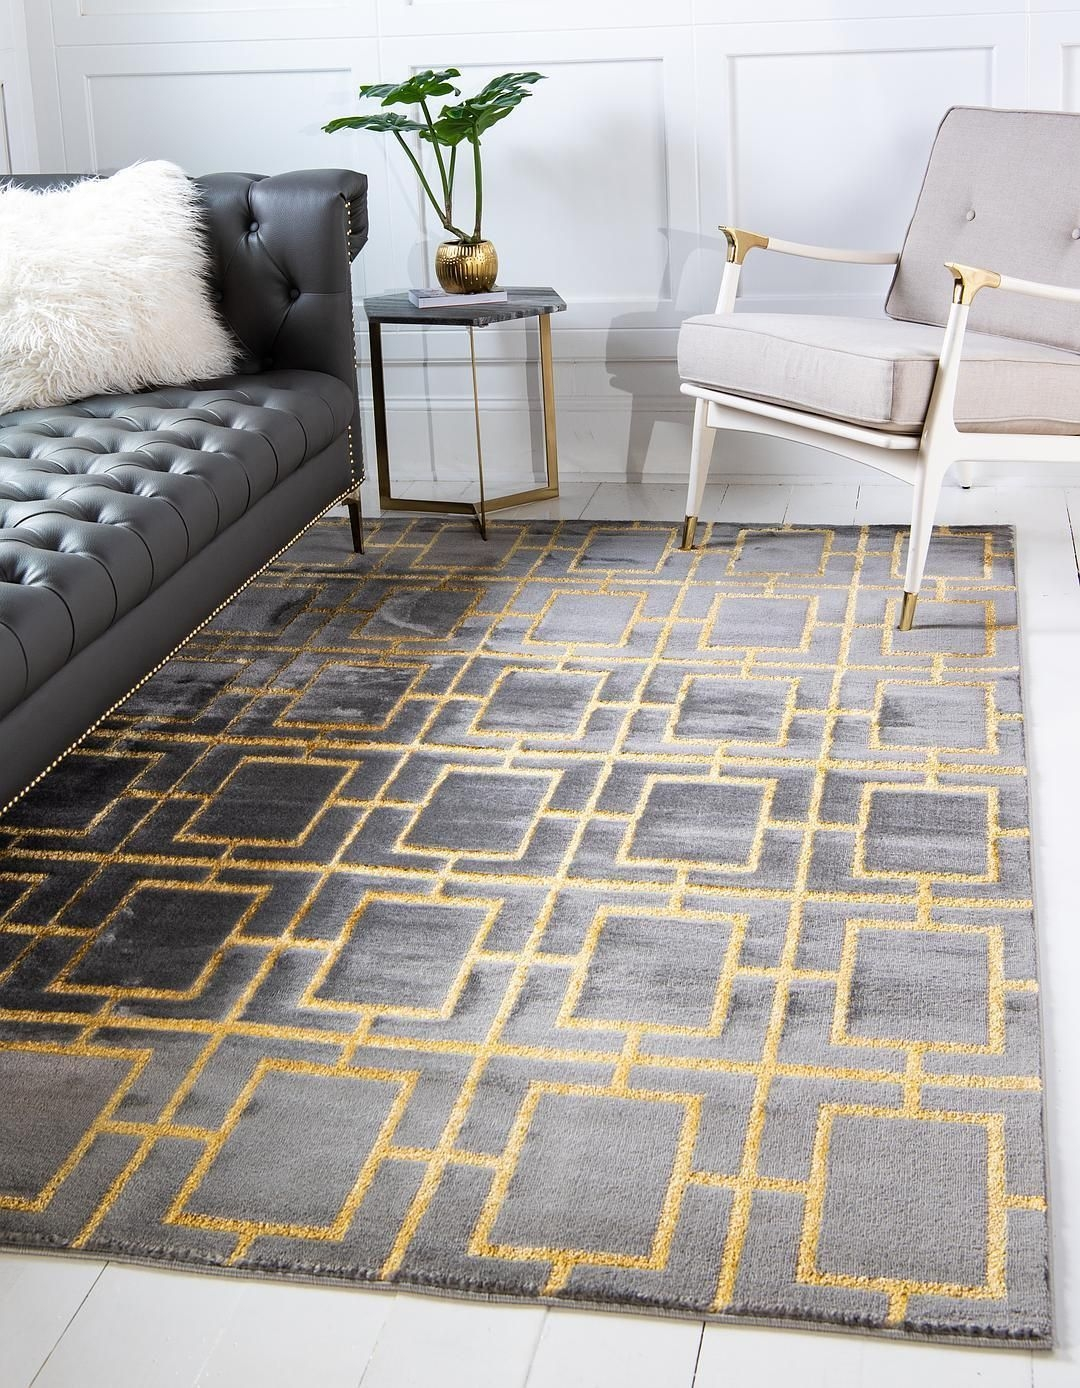 Magnificent Rugs for Living Room 9x12 On Stupendous Gray Gold Marilyn Monroe 5 X 8 Marilyn Monroe™ Glam Deco On Rugs for Living Room 9x12